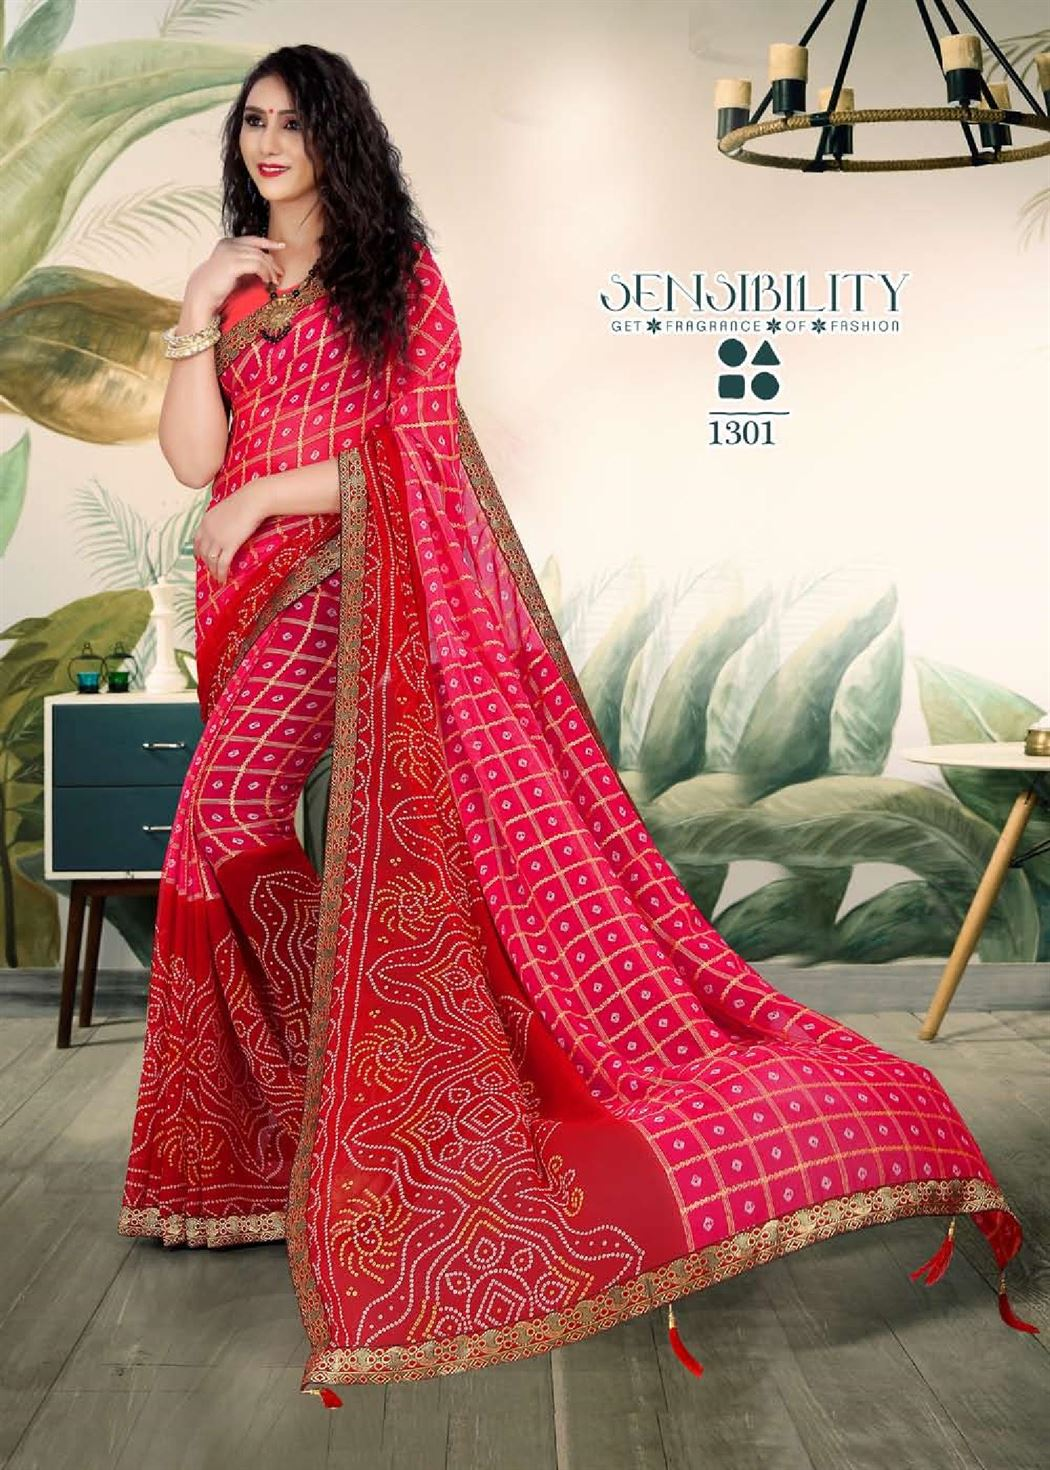 https://www.wholesaletextile.in/product-img/--Odhani-Weight-less-casual-wear-sarees-catalogue-81575695845.jpg